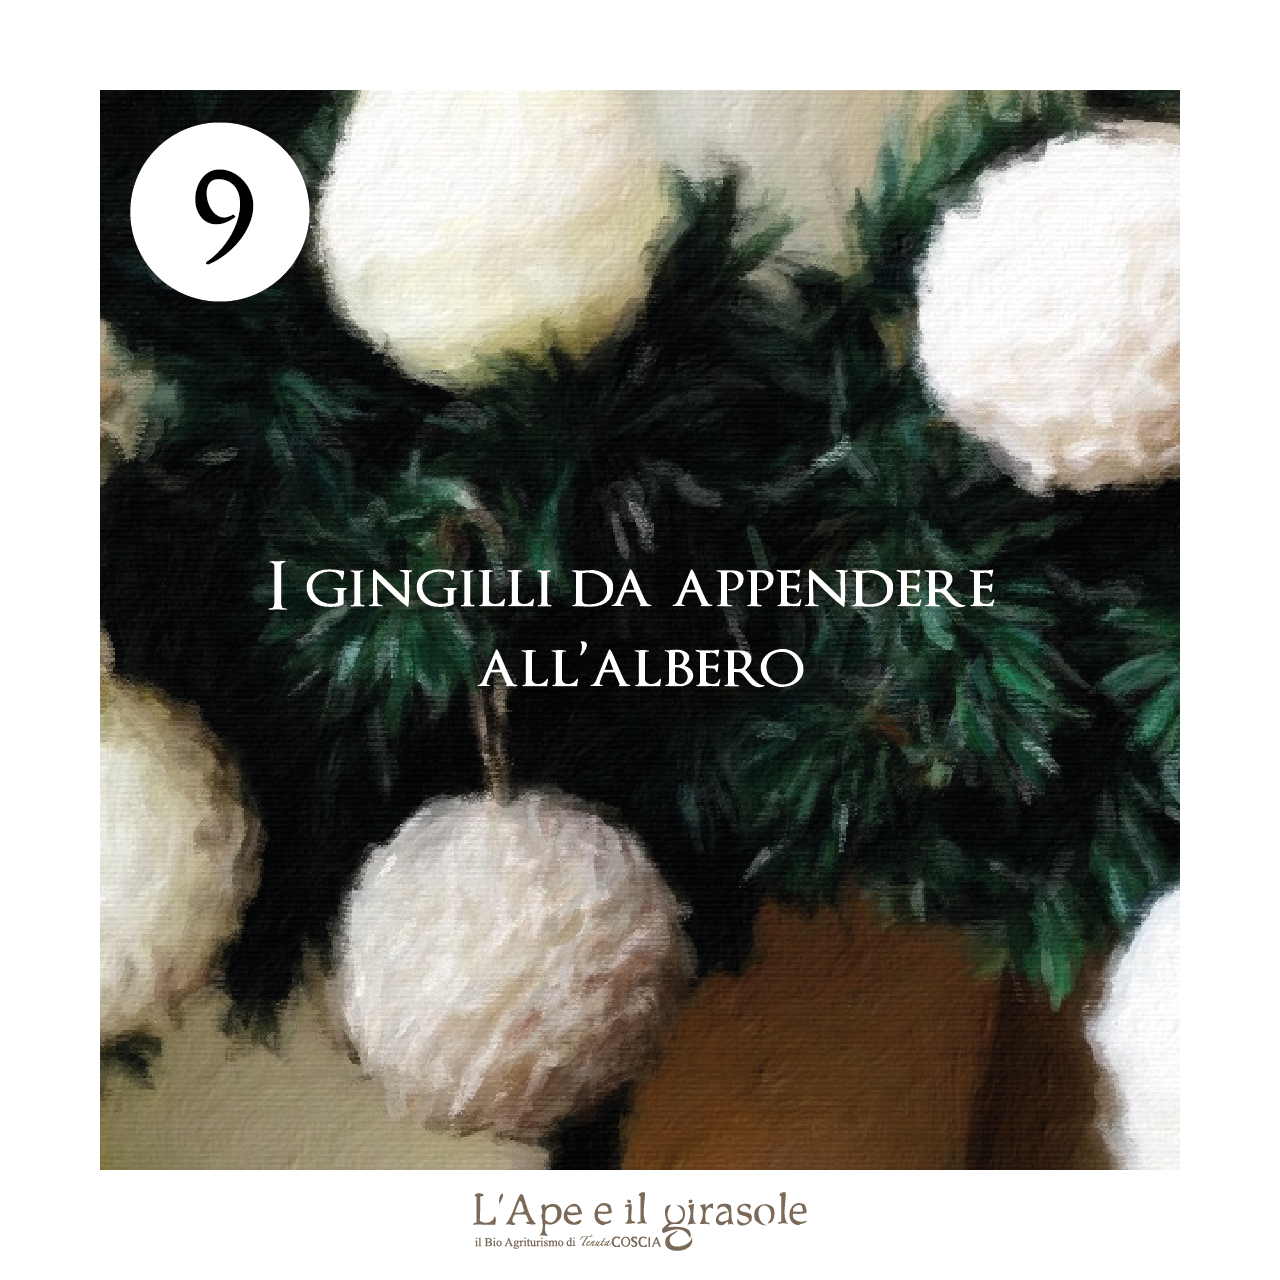 Gingilli da appendere all'albero